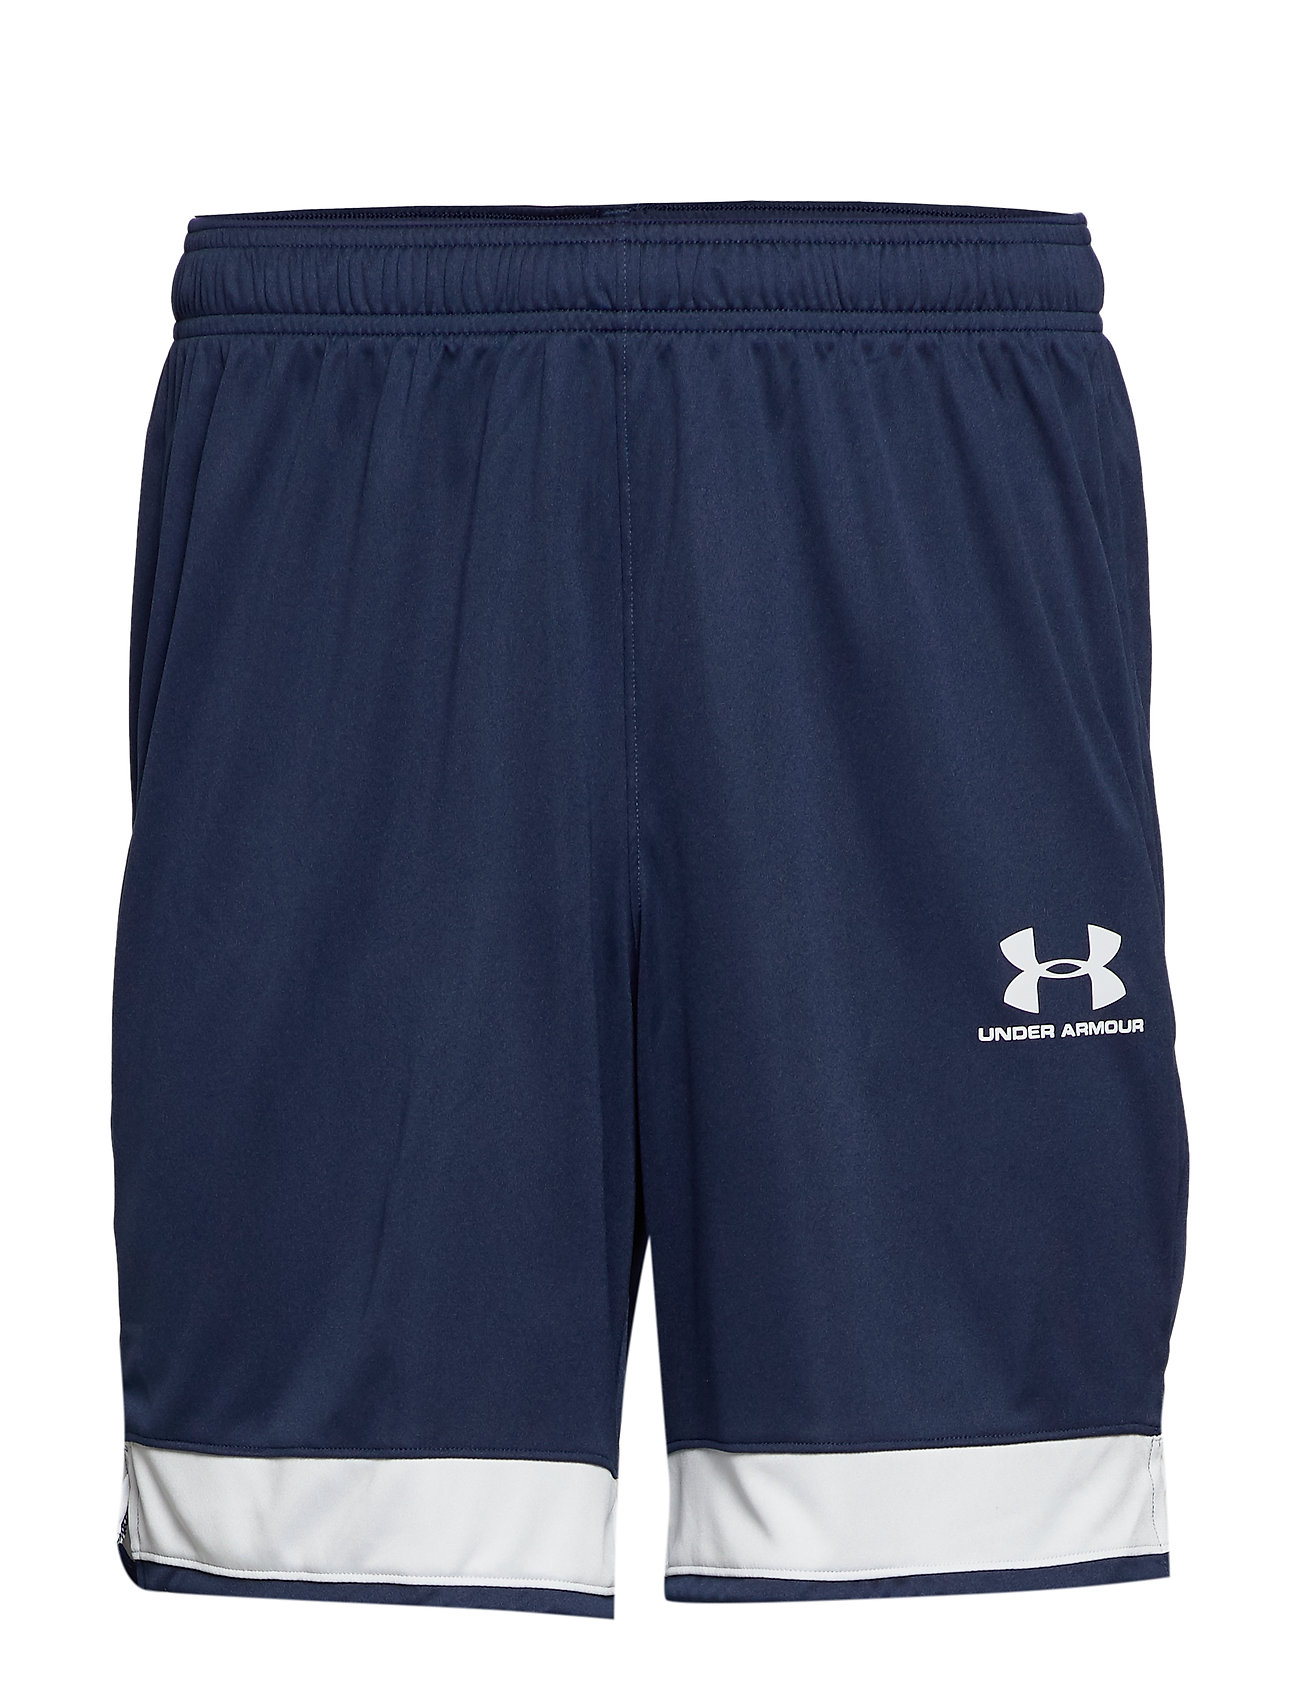 Under Armour Challenger III Knit Short - ACADEMY